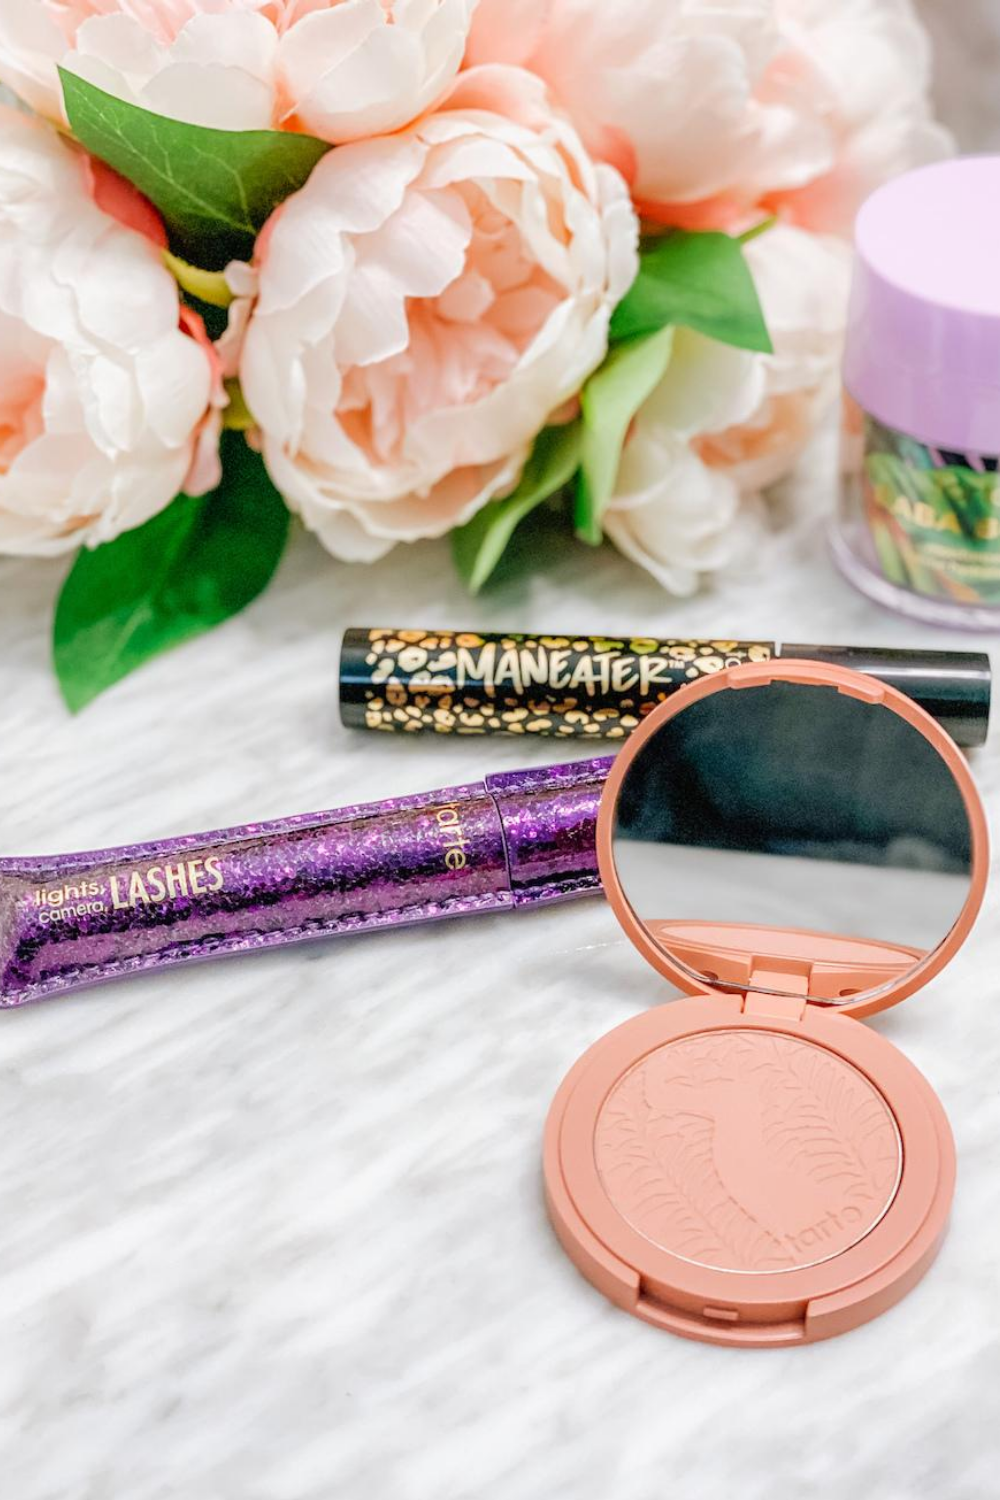 Tarte Create Your Own Kit (4 Items for $35)